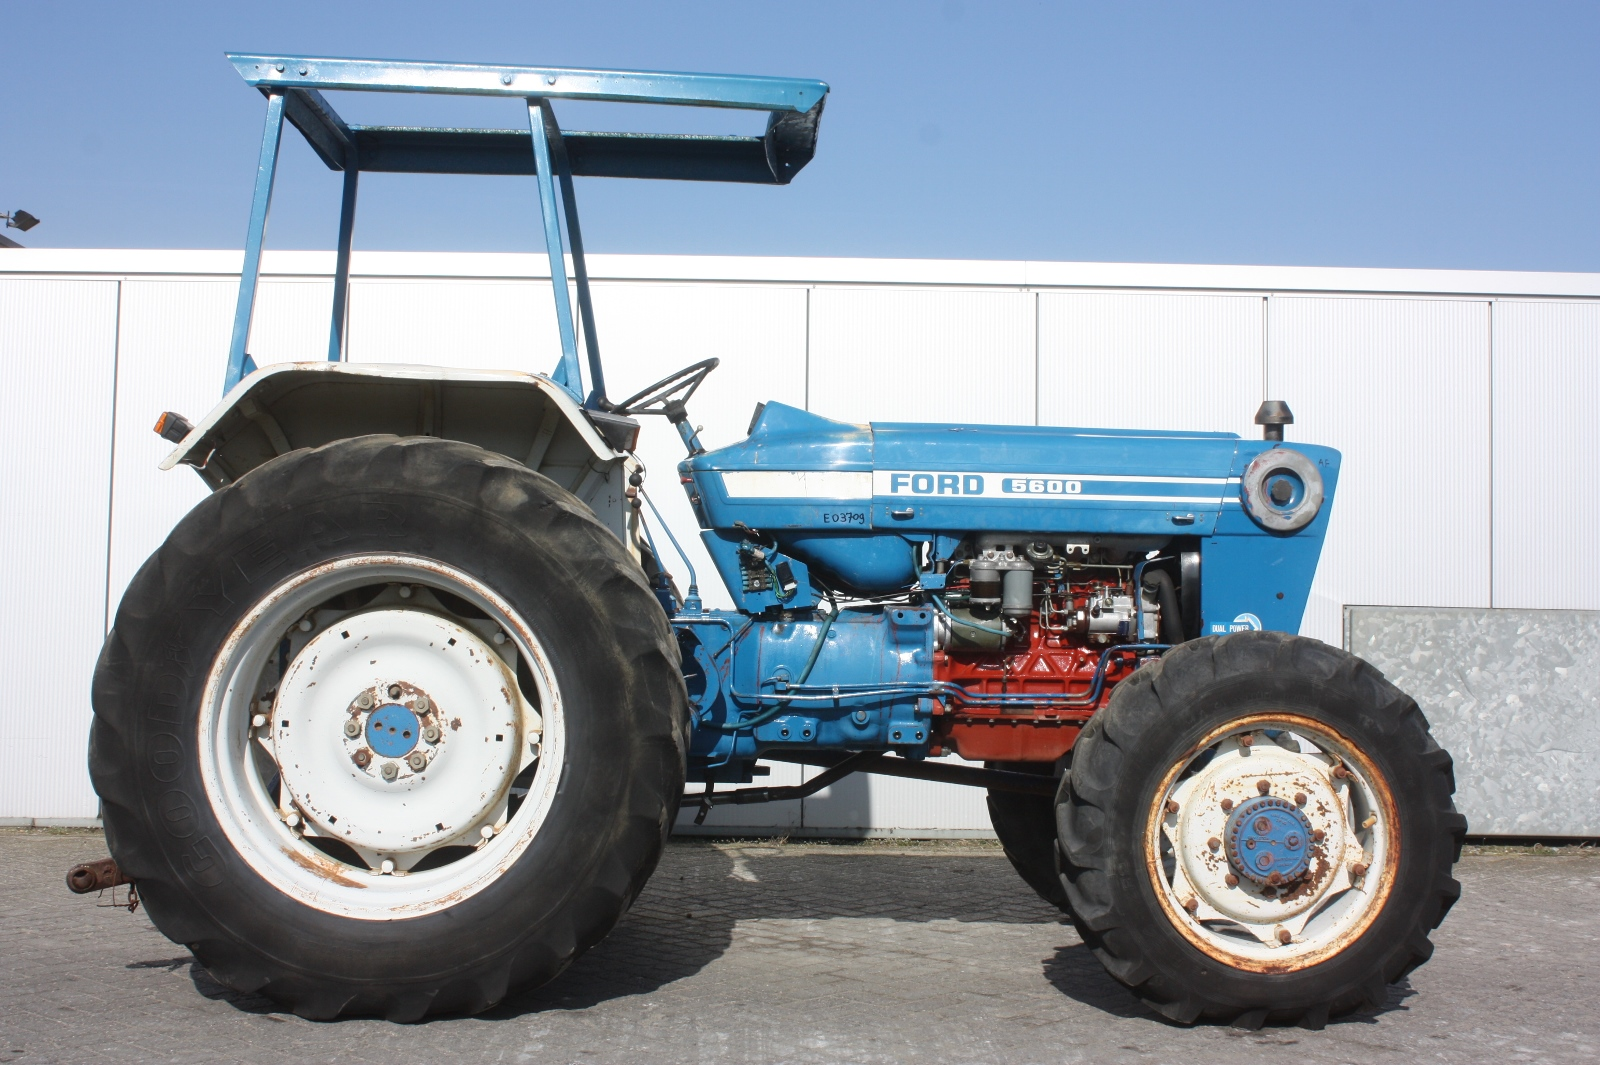 Ford 5600 Tractor : Ford  agricultural tractor van dijk heavy equipment